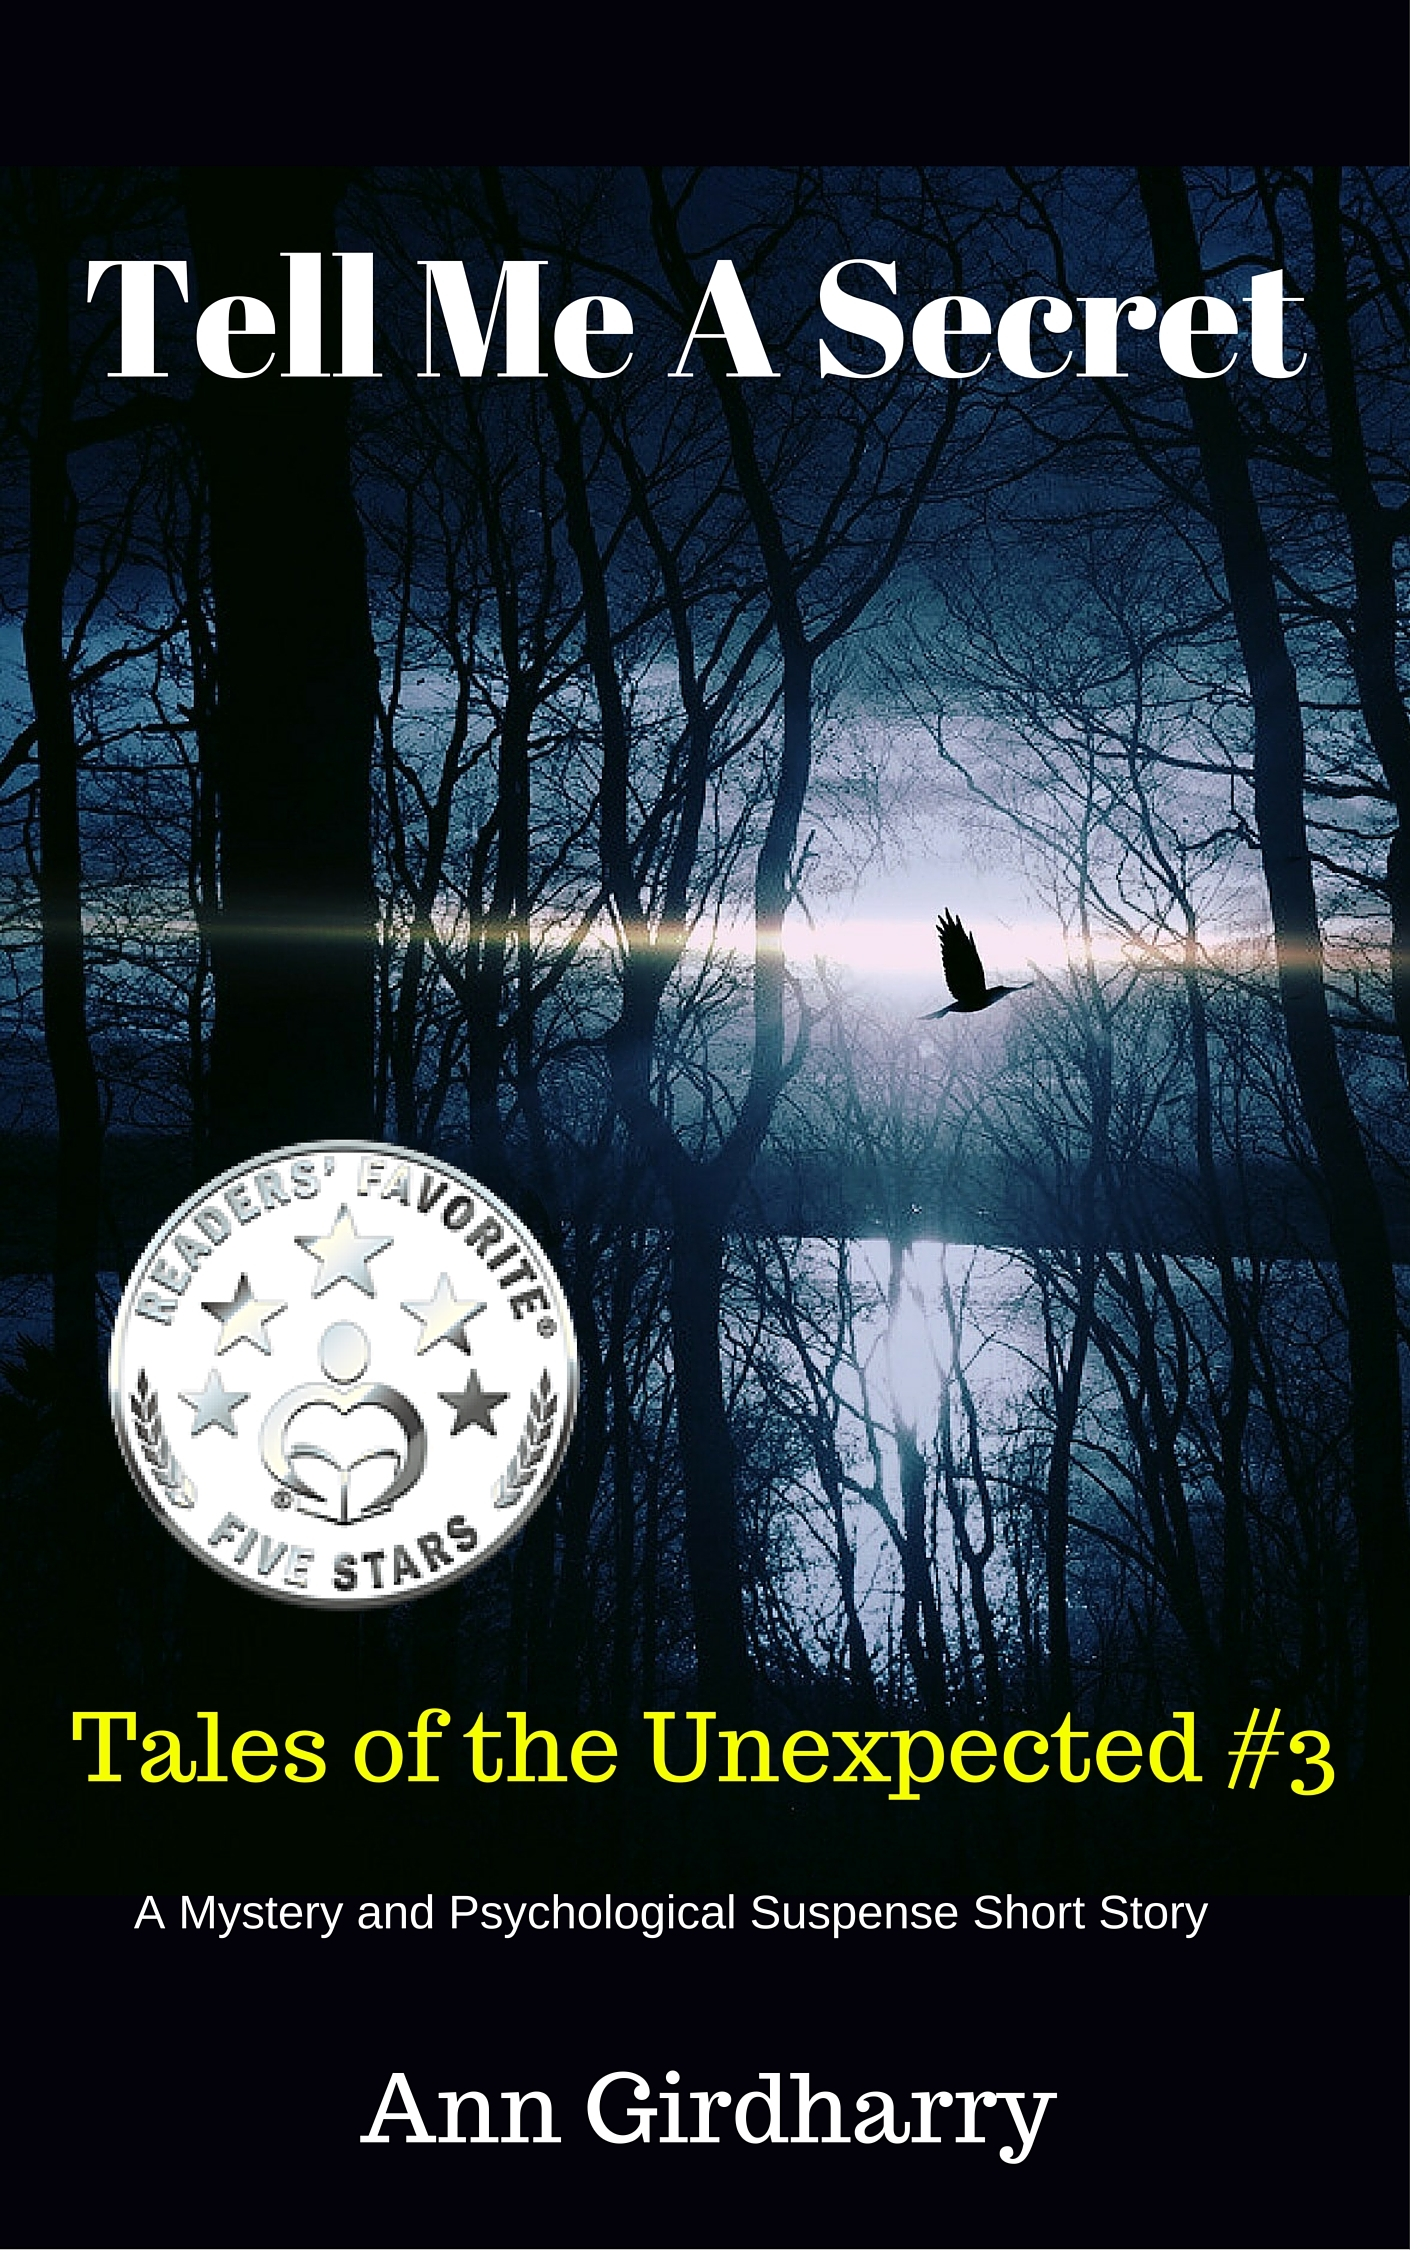 Tell Me A Secret (Tales of the Unexpected #3) Ann Girdharry